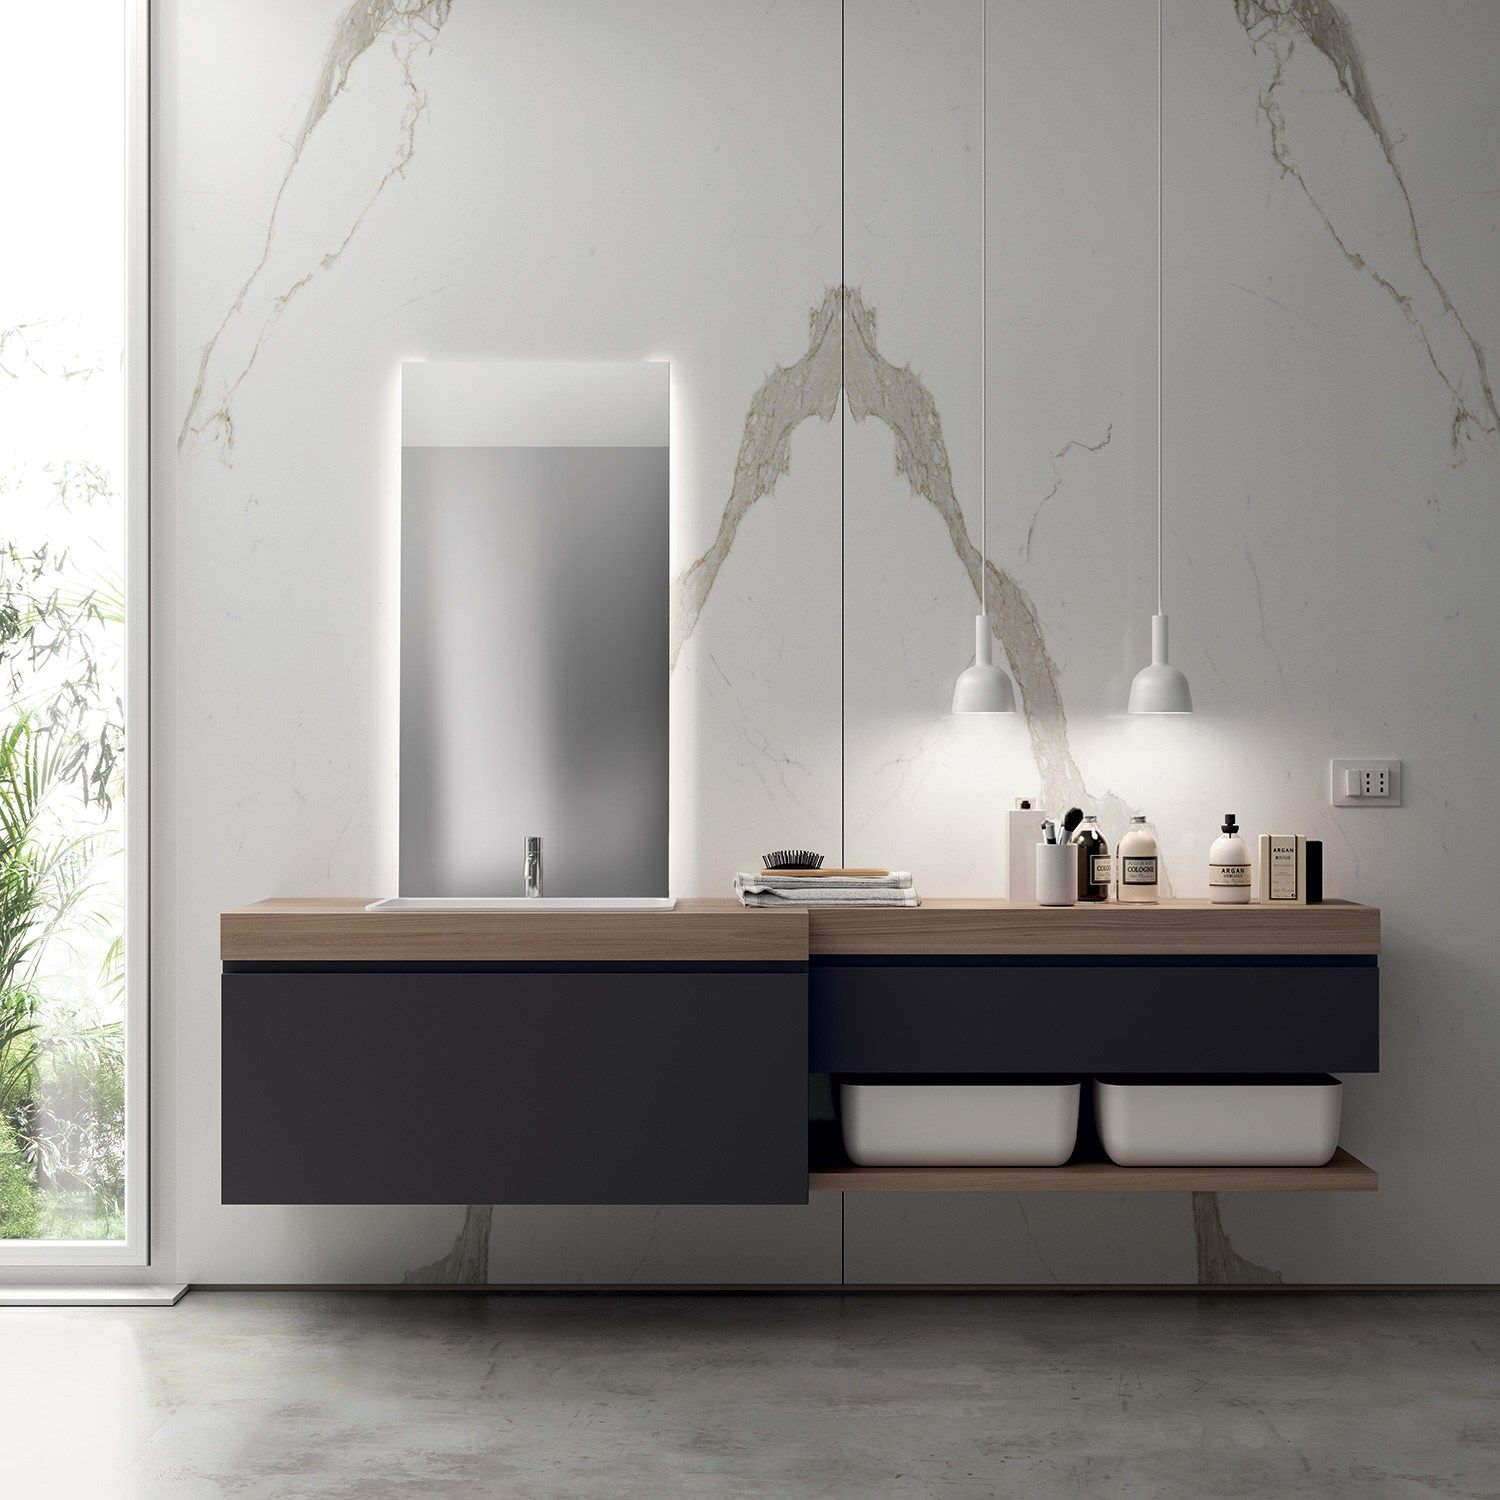 Bathroom furniture set KI by Scavolini Bathrooms design Nendo